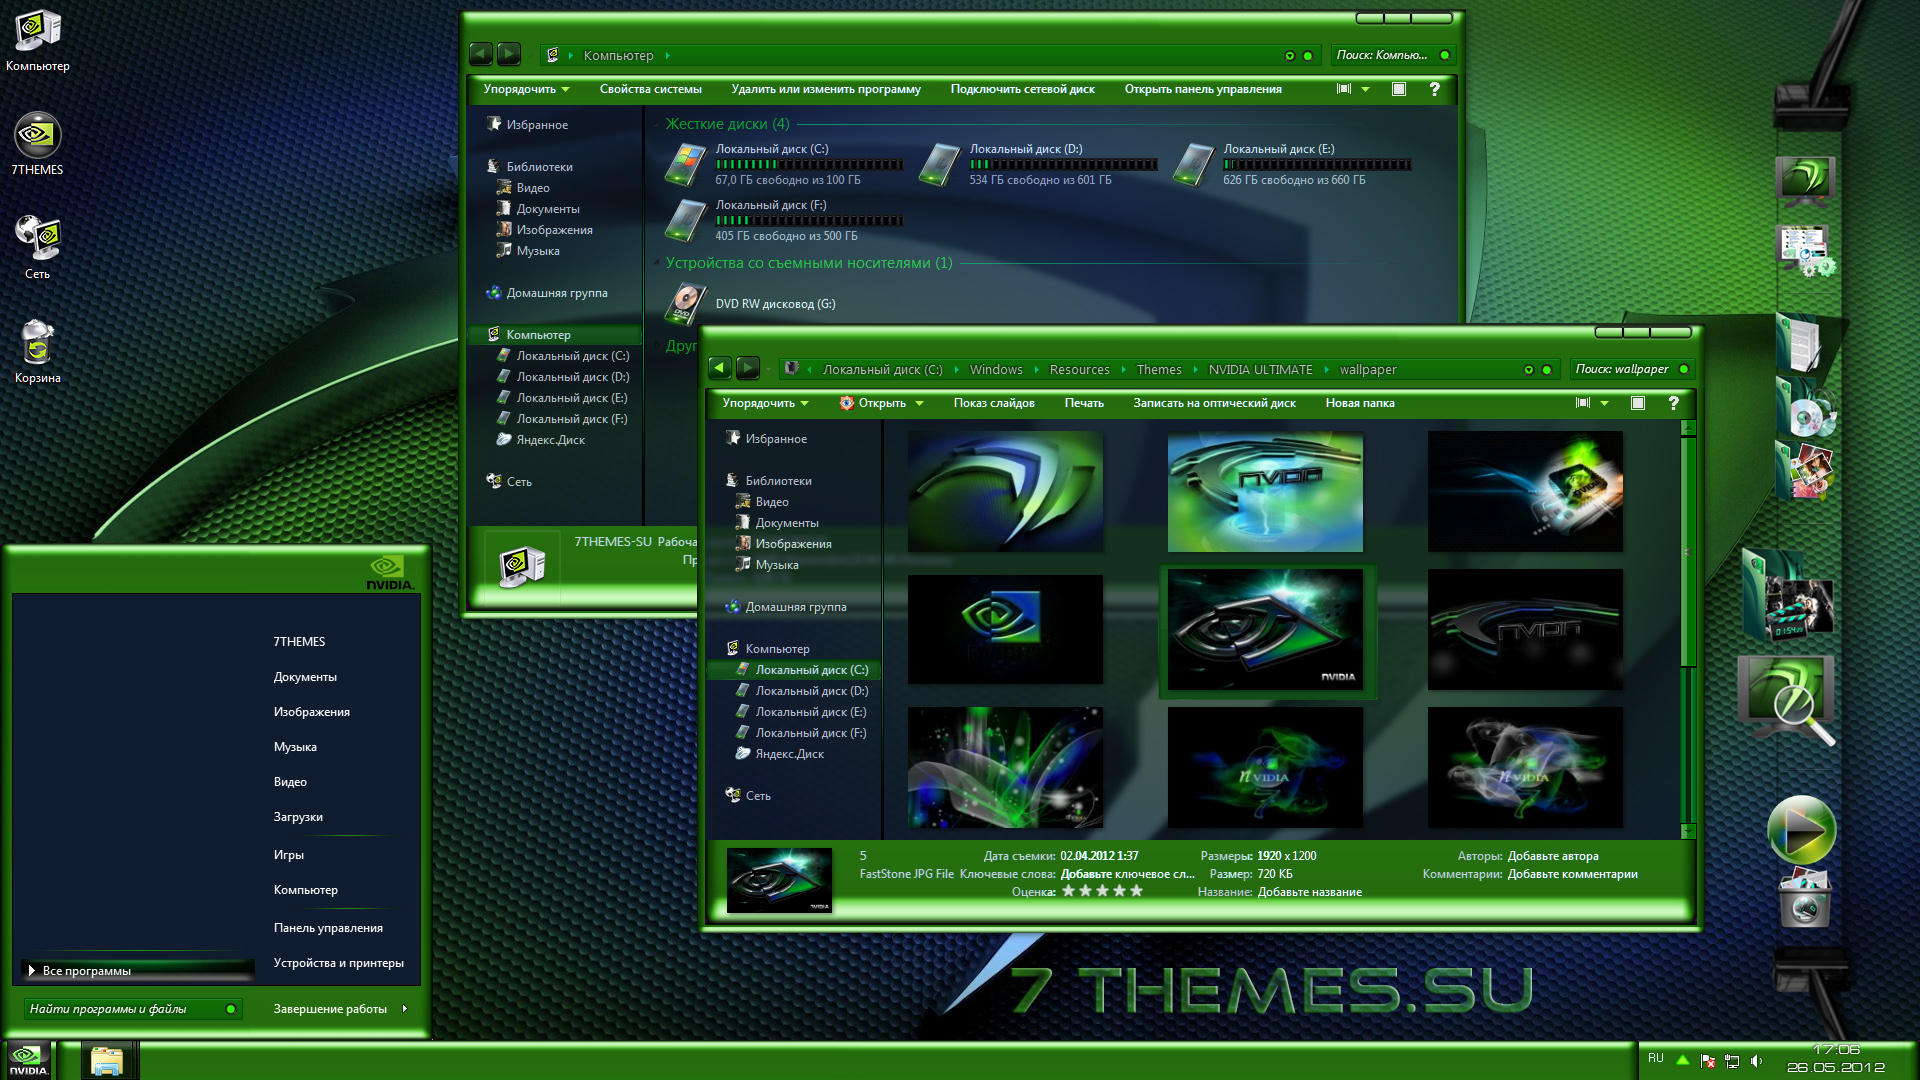 Download Nvidia Drivers For Windows 7 Ultimate 64 Bit